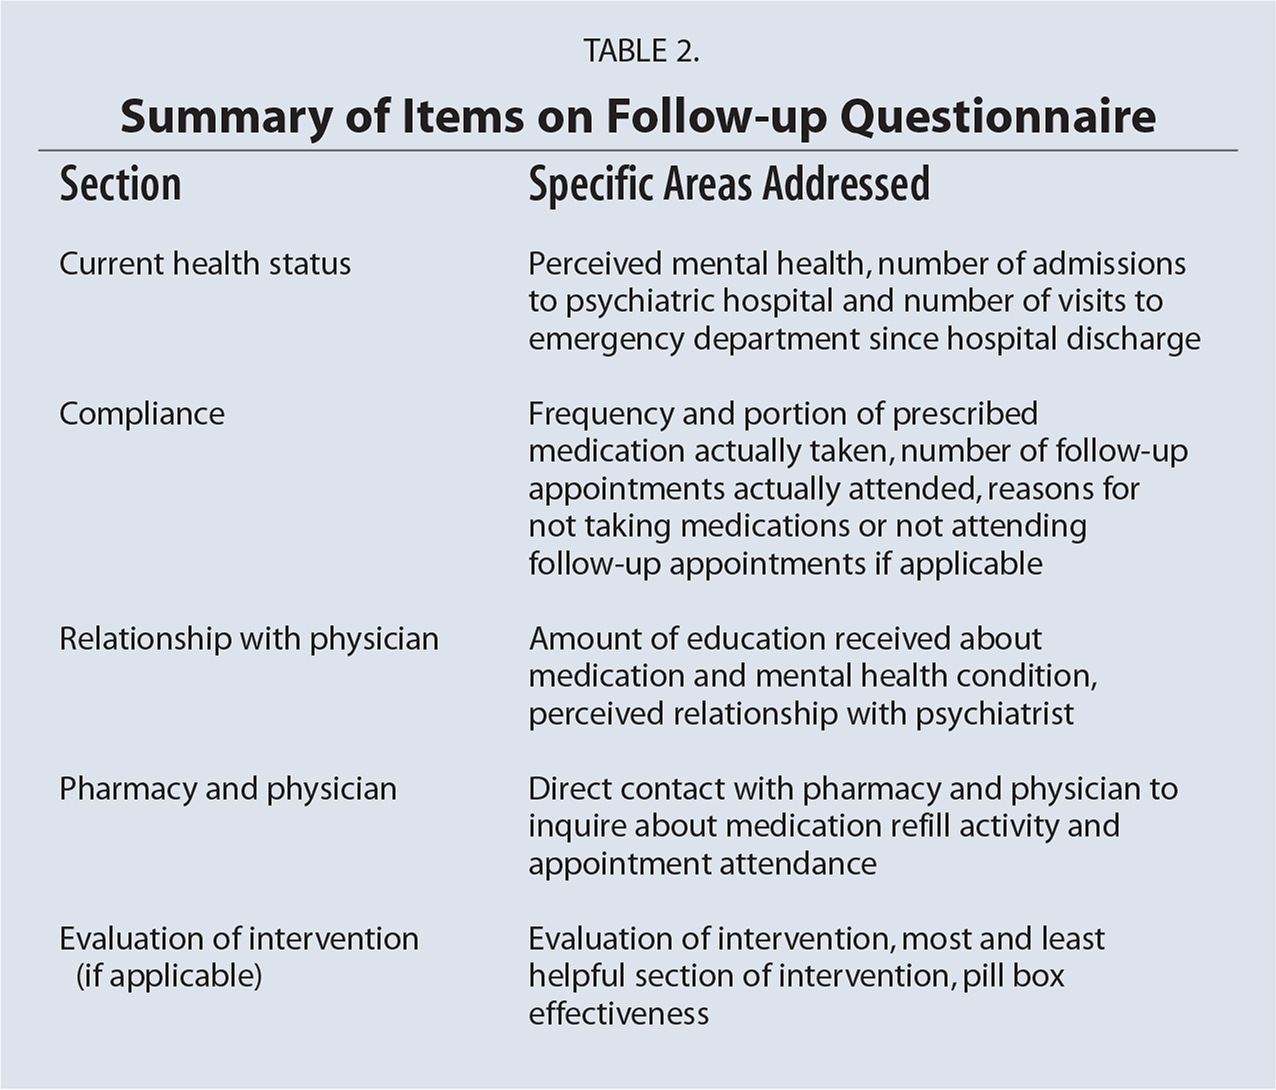 Summary of Items on Follow-up Questionnaire